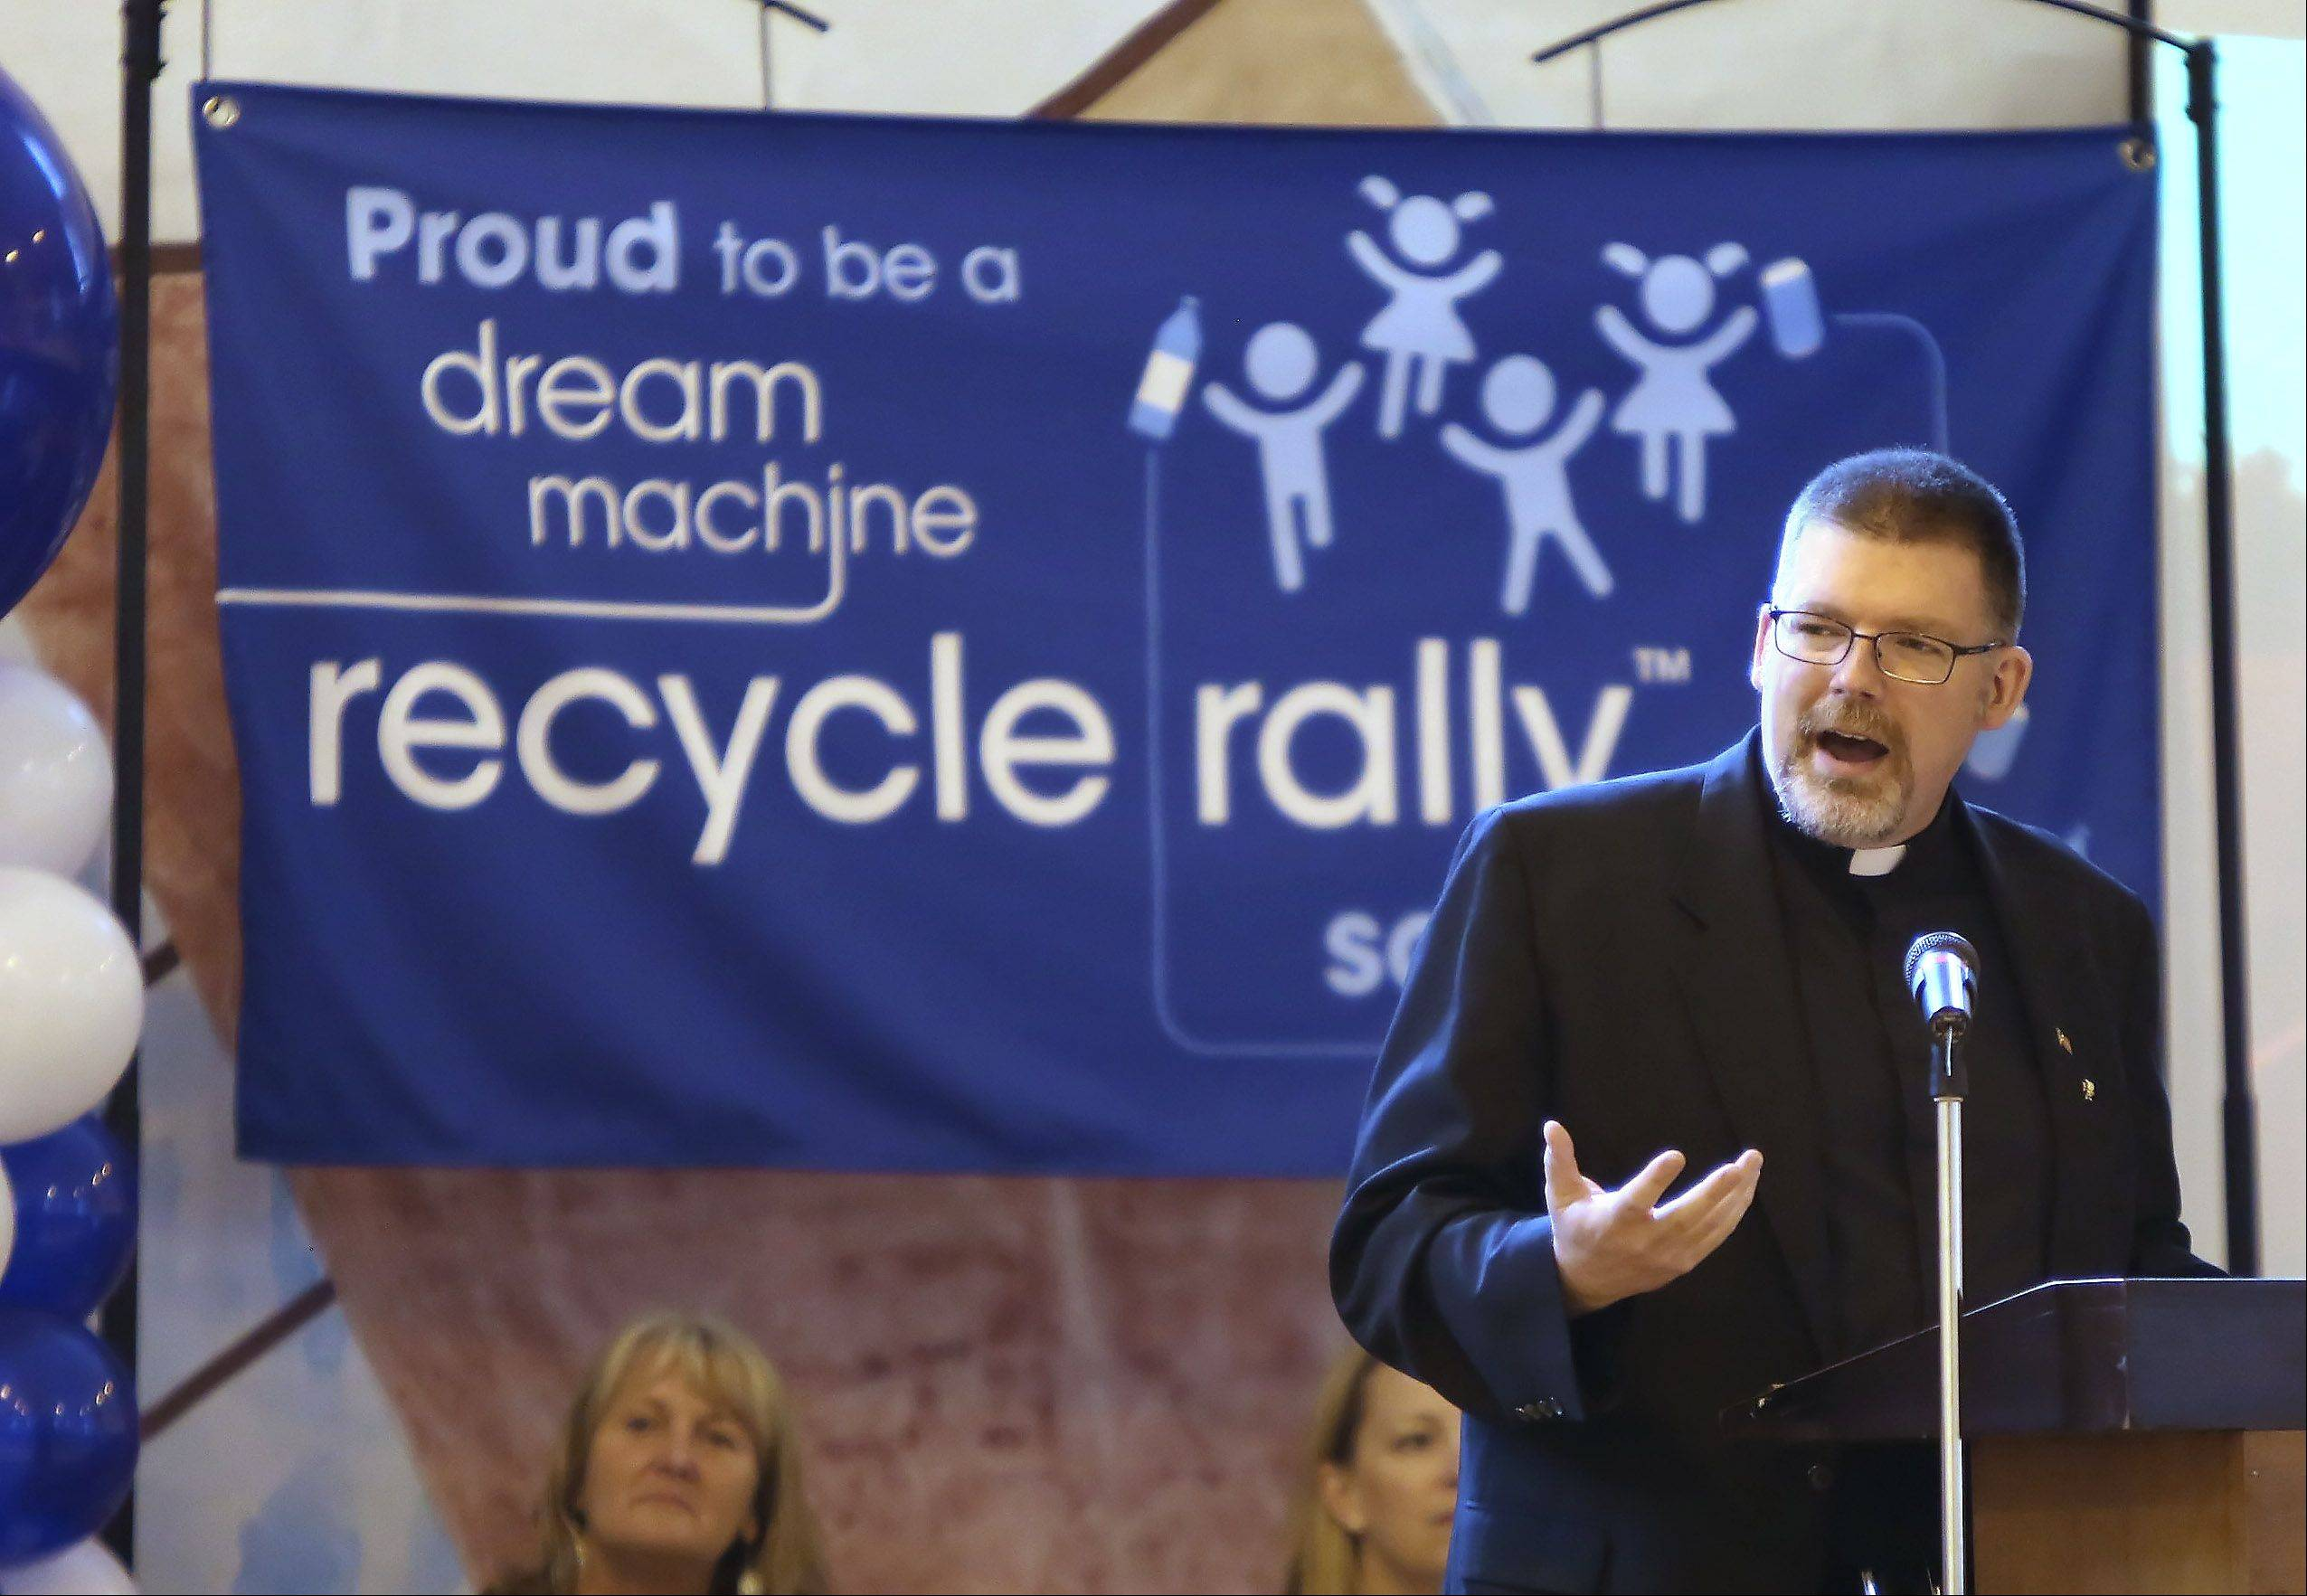 St. Bede Catholic Parish's Rev. Tim Fairman congratulates students at the Ingleside school on winning a $25,000 grand prize from PepsiCo's Dream Machine Recycle Rally.